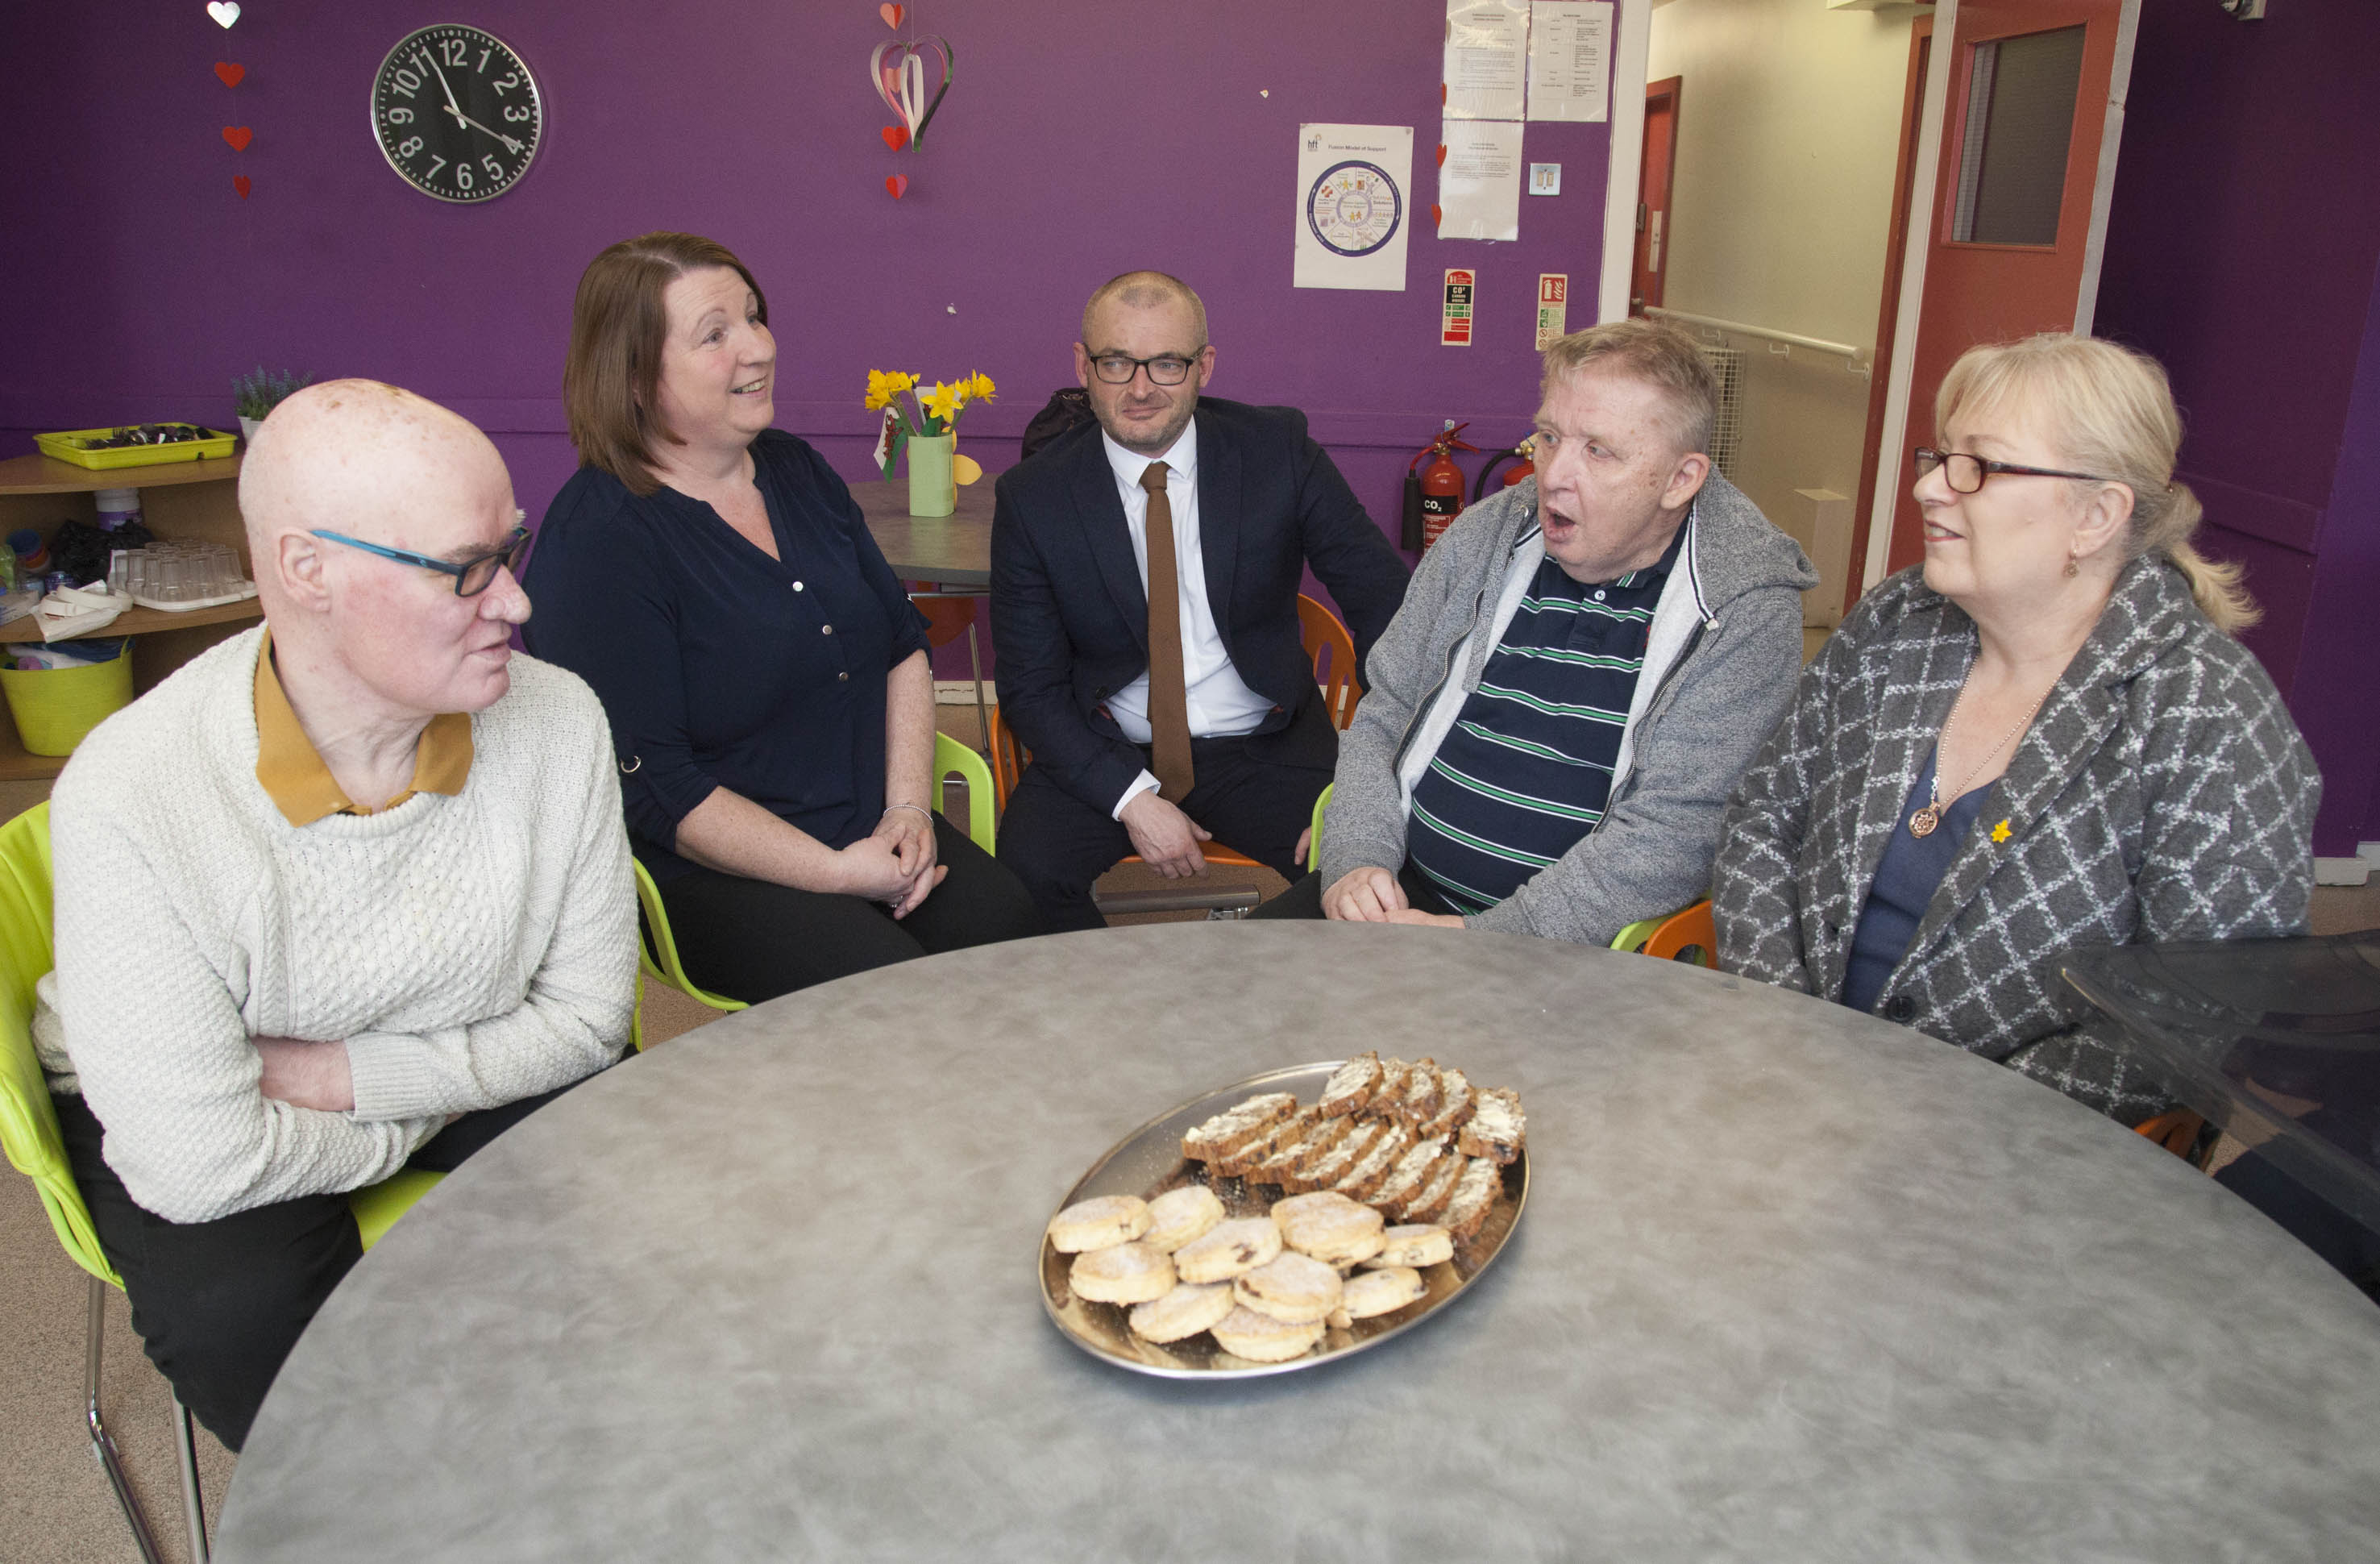 Cllr Christine Jones and Leader of the Council Cllr Aaron Shotton talk to service users Michael Hodson and John Freeman along with Hft's Maria Williams